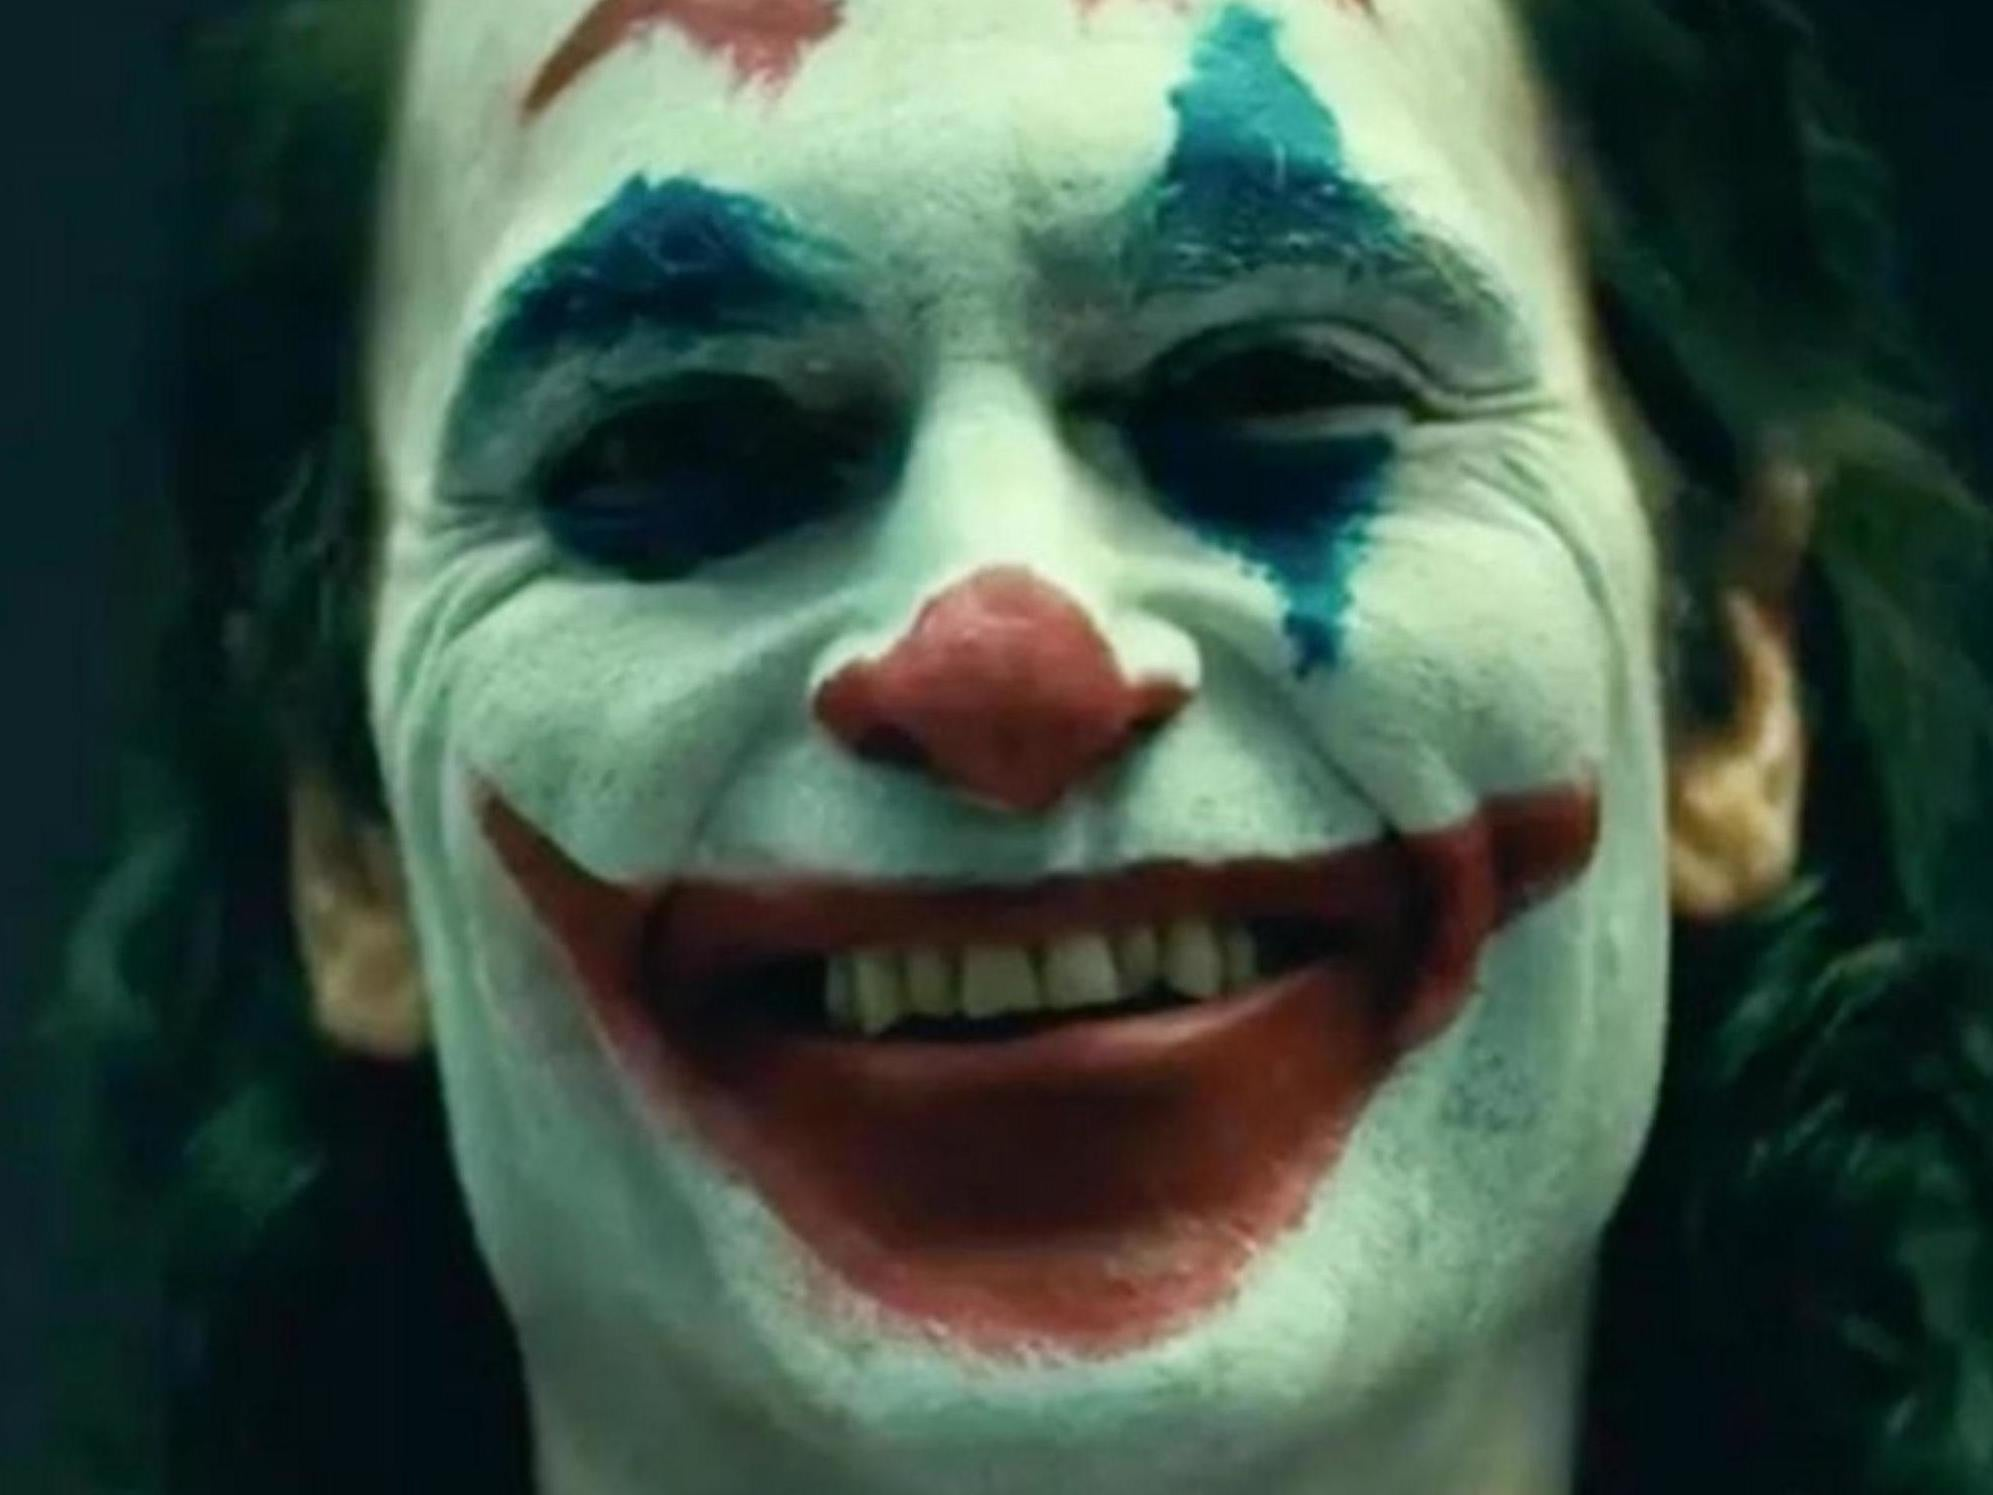 The new Joker movie provides a depressing glimpse at the future of cinema